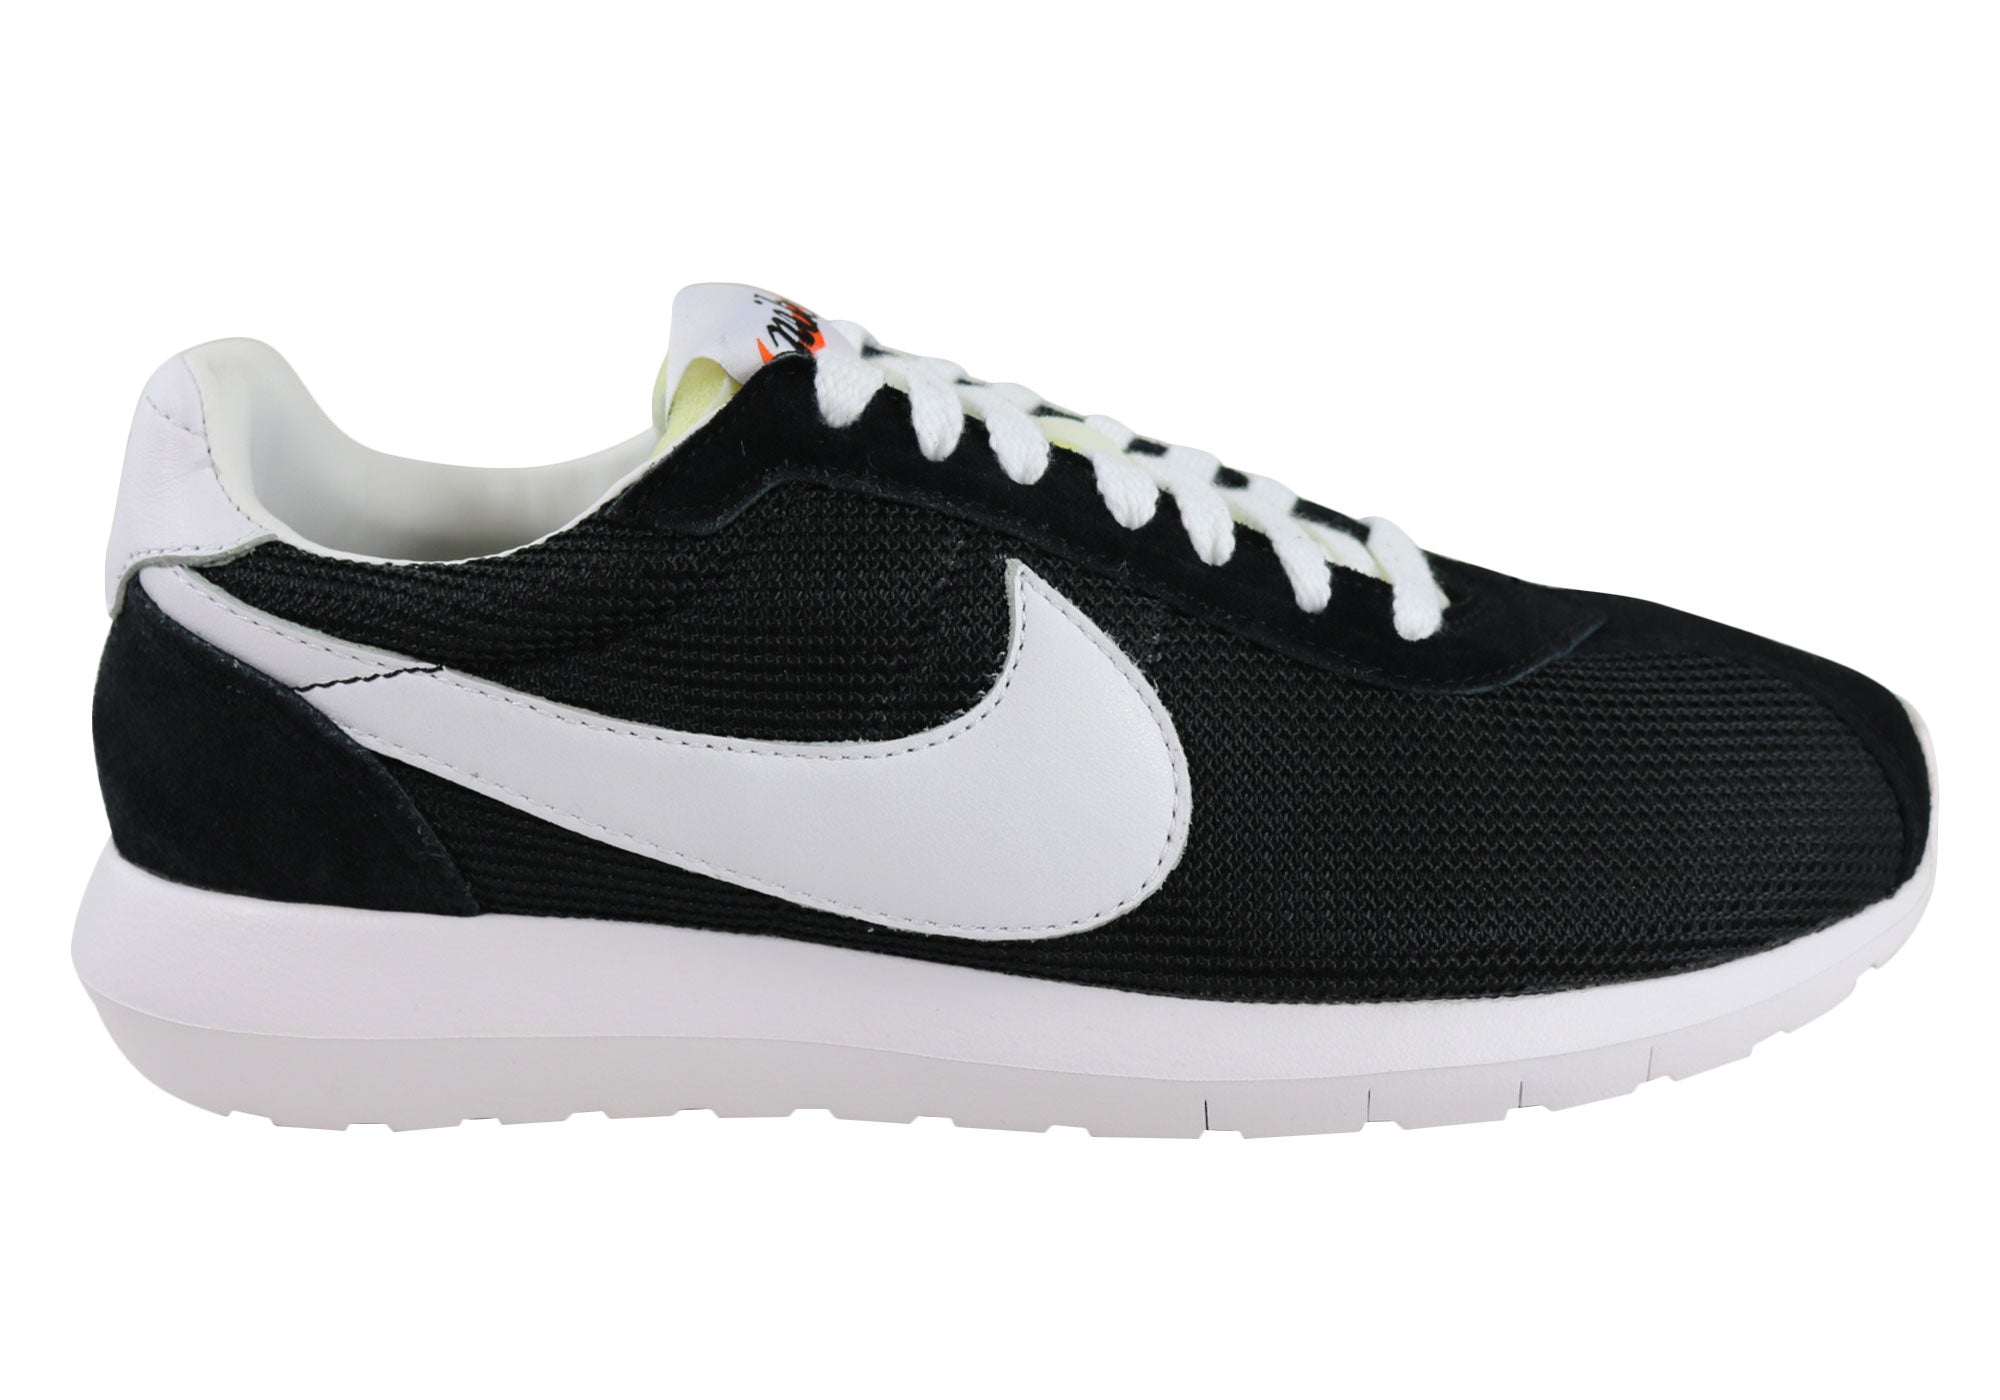 innovative design c05e8 06c0c Home Nike W Roshe LD-1000 QS Mens Lace Up Casual Shoes. Black White ...